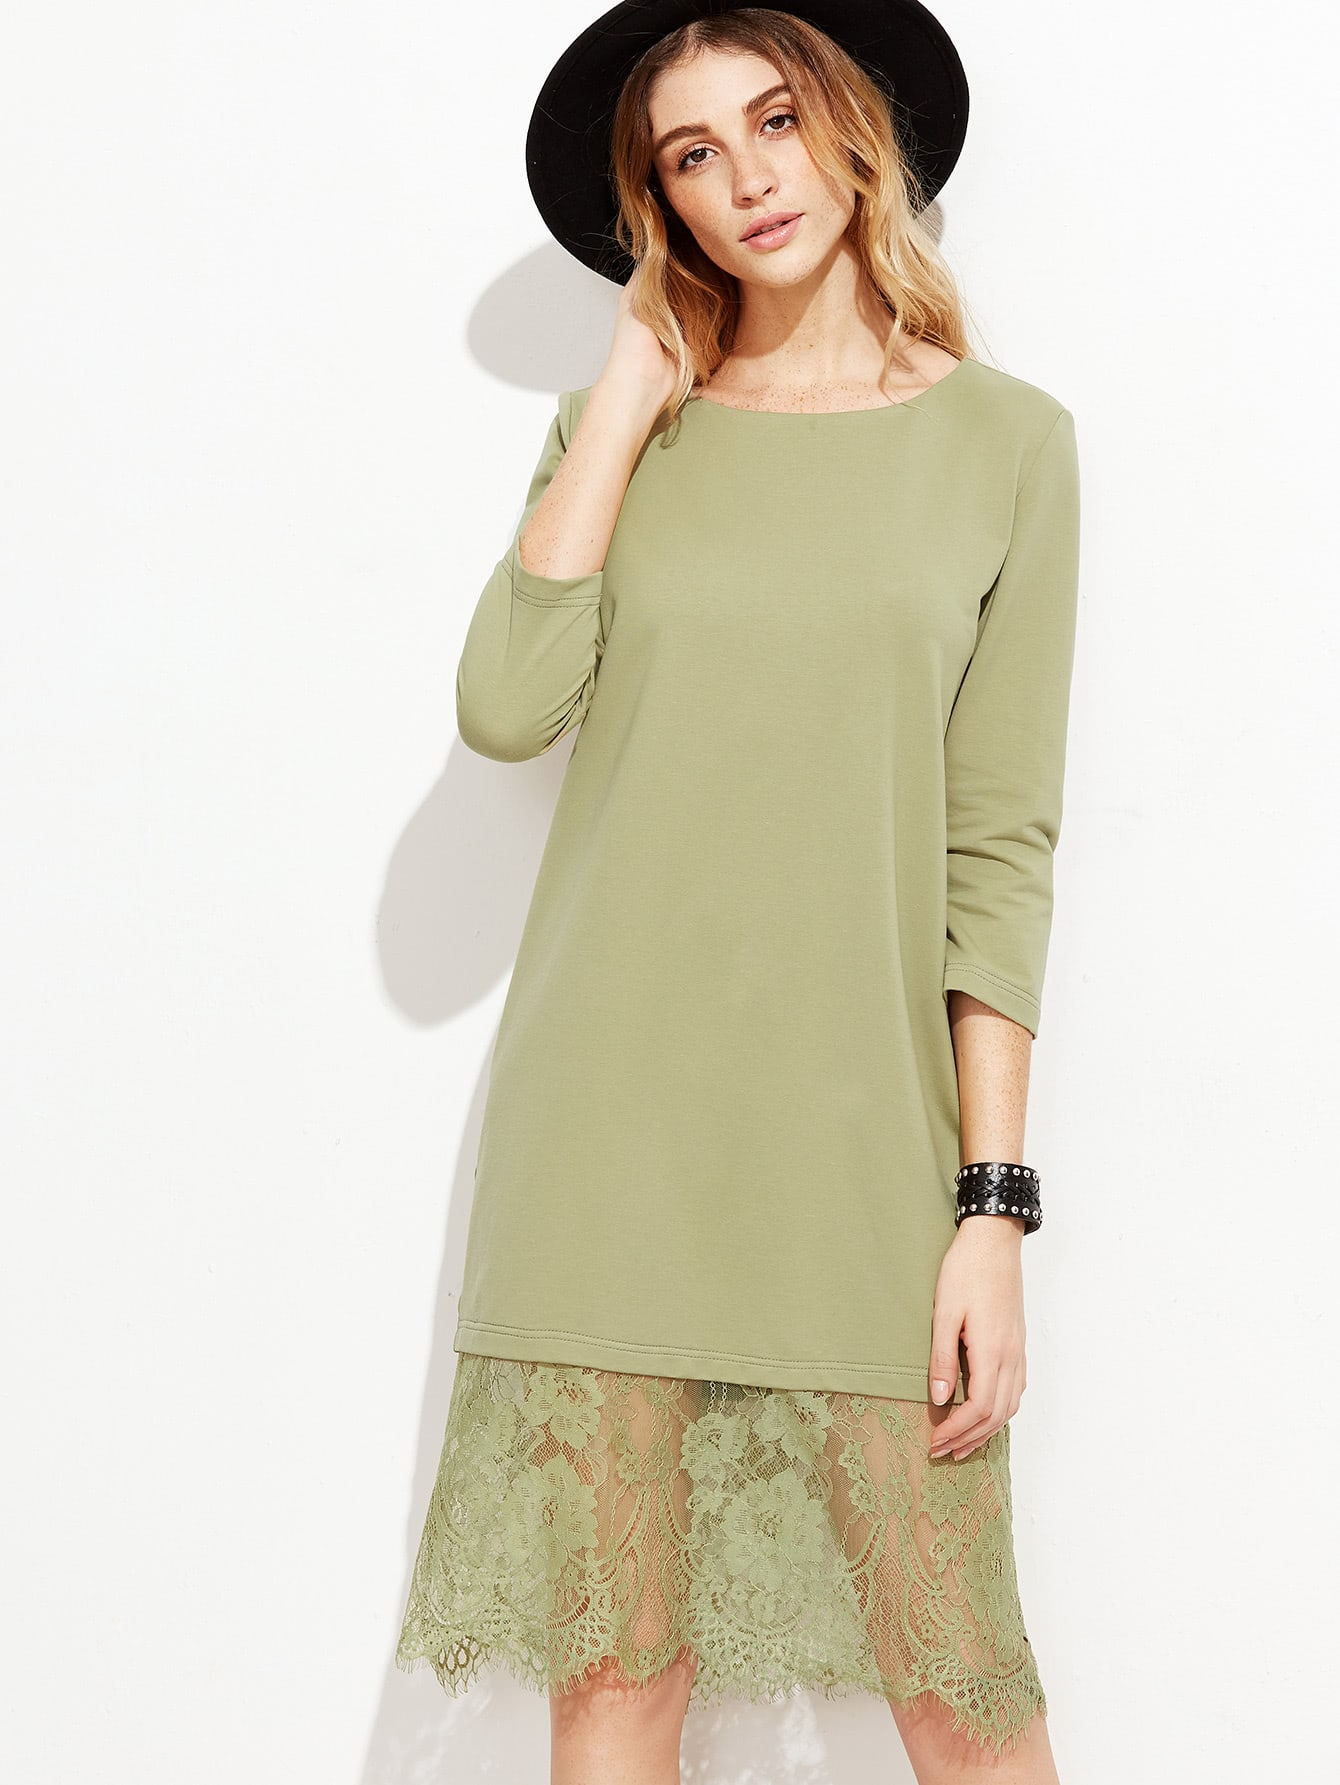 Green Eyelash Lace Trim Tunic DressGreen Eyelash Lace Trim Tunic Dress<br><br>color: Green<br>size: L,M,S,XS